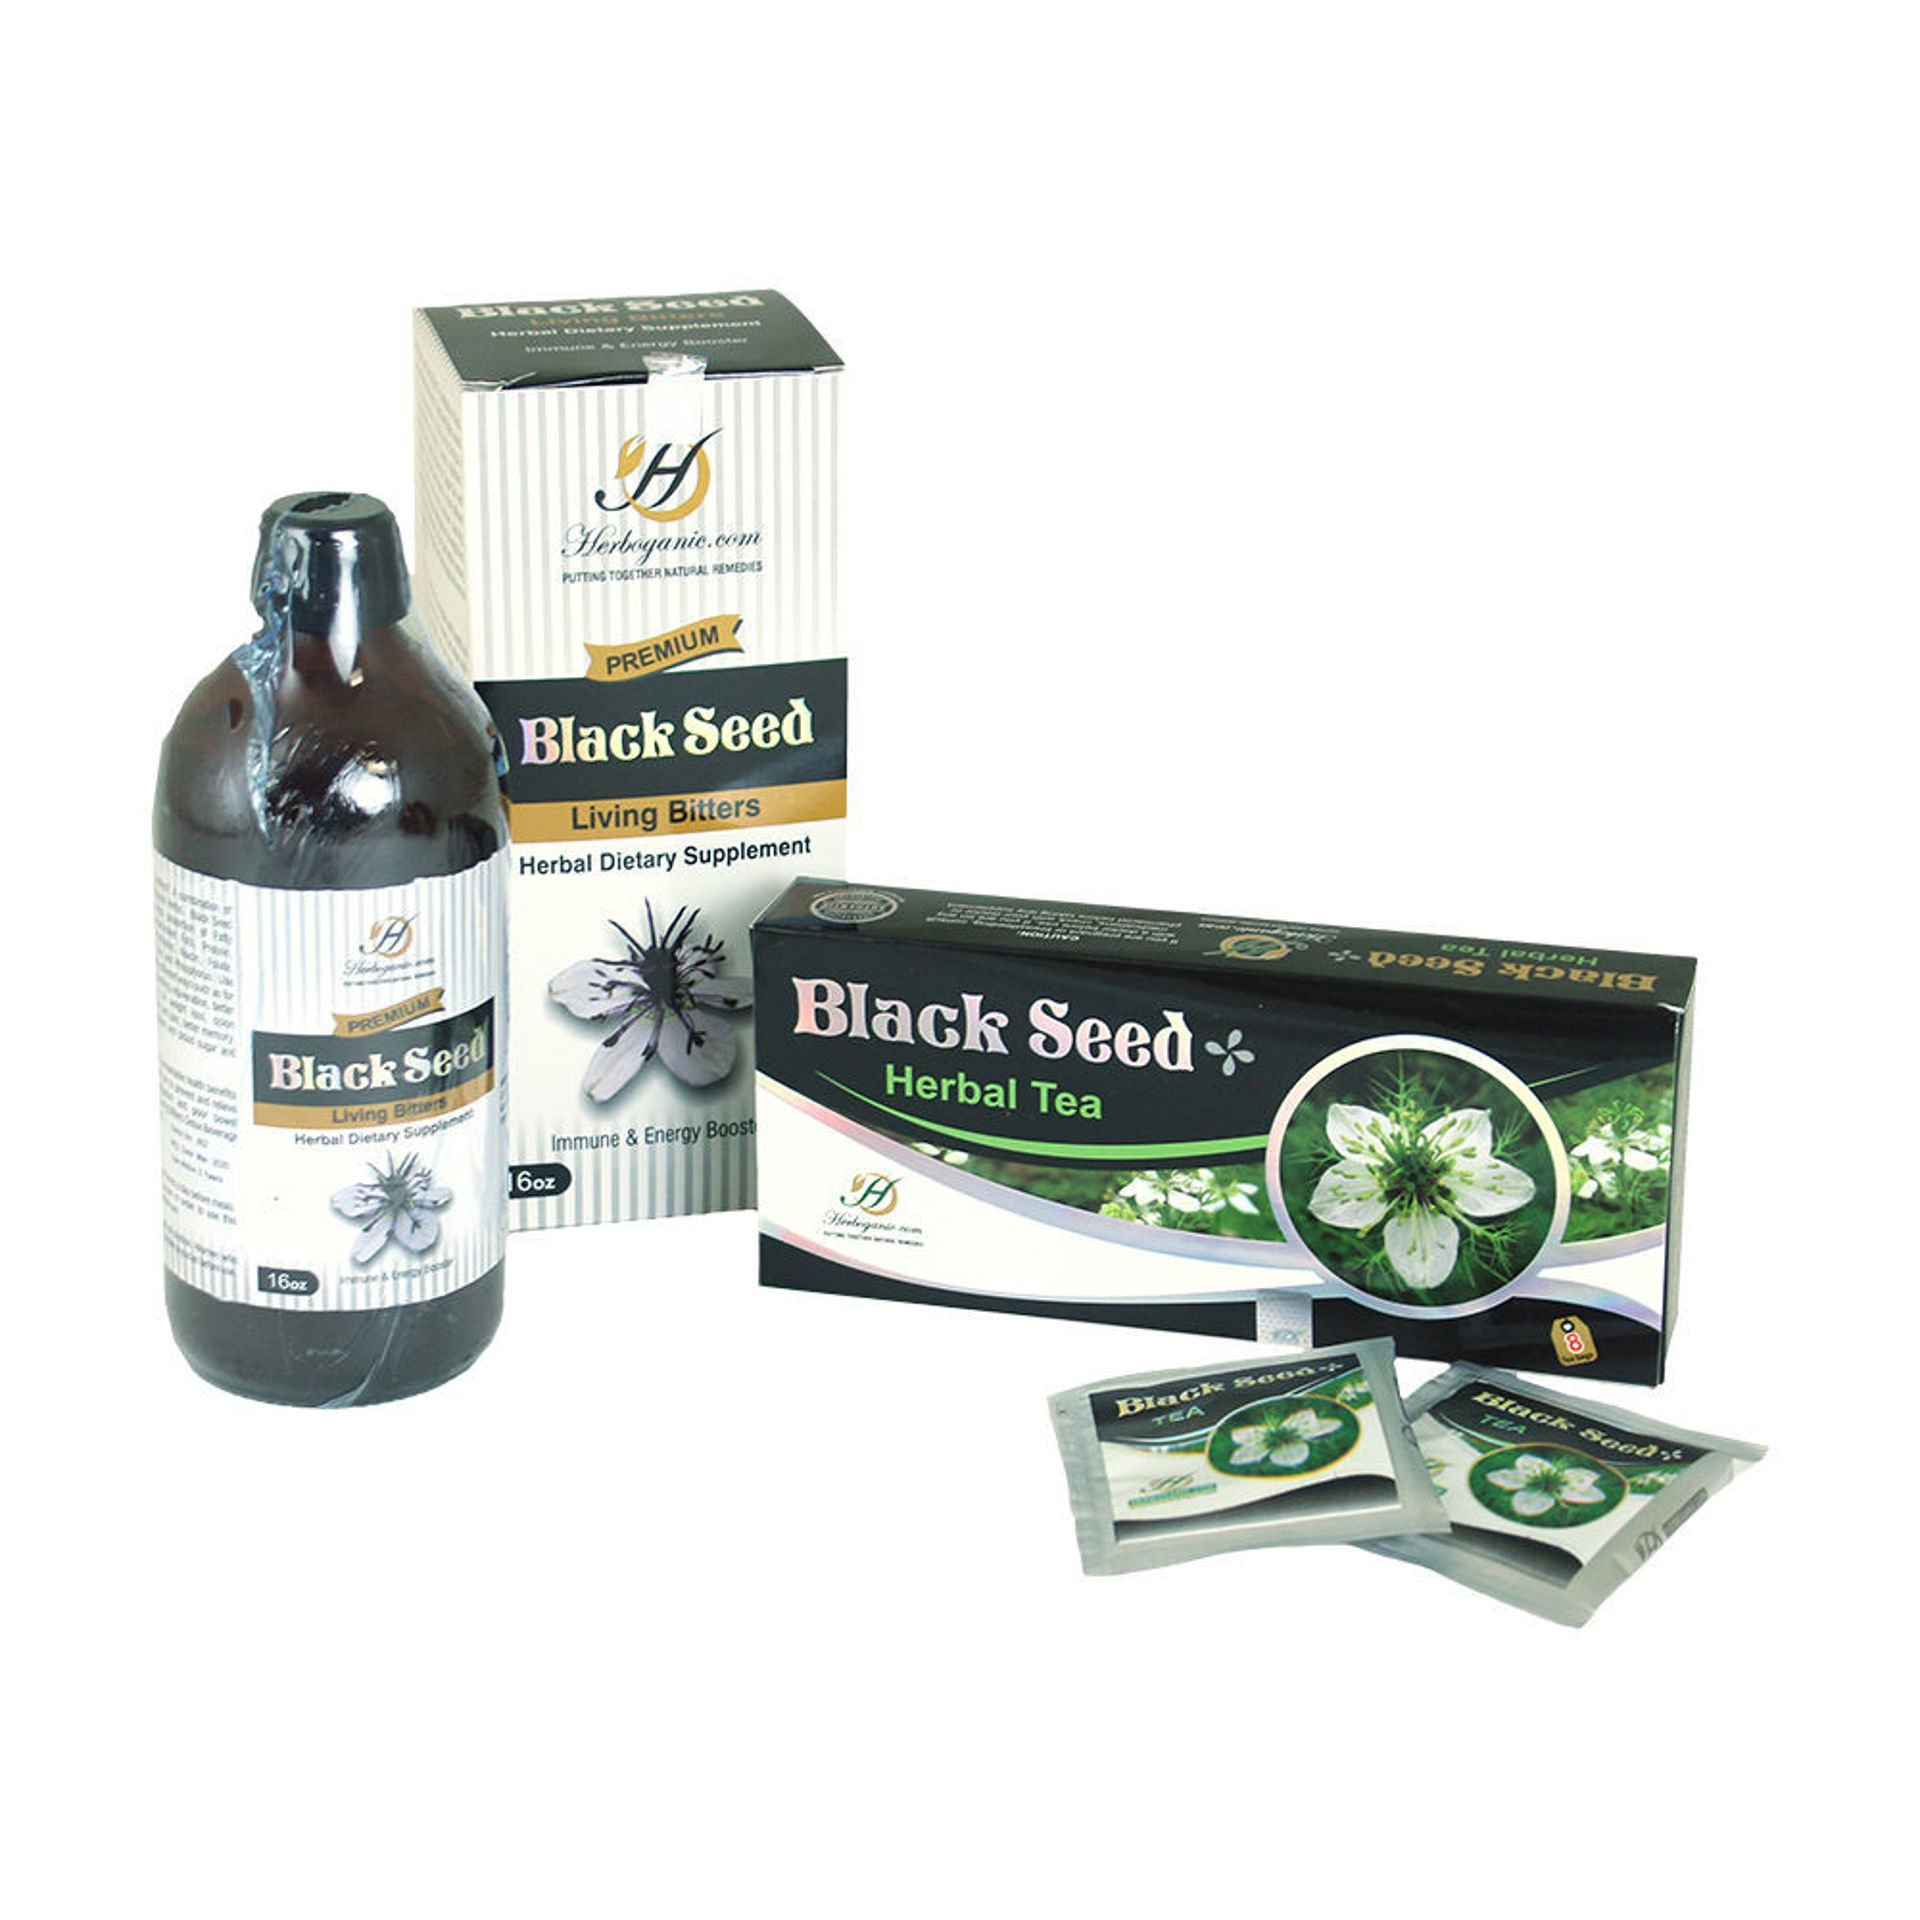 Picture of Black Seed Bitters Premium Box Set